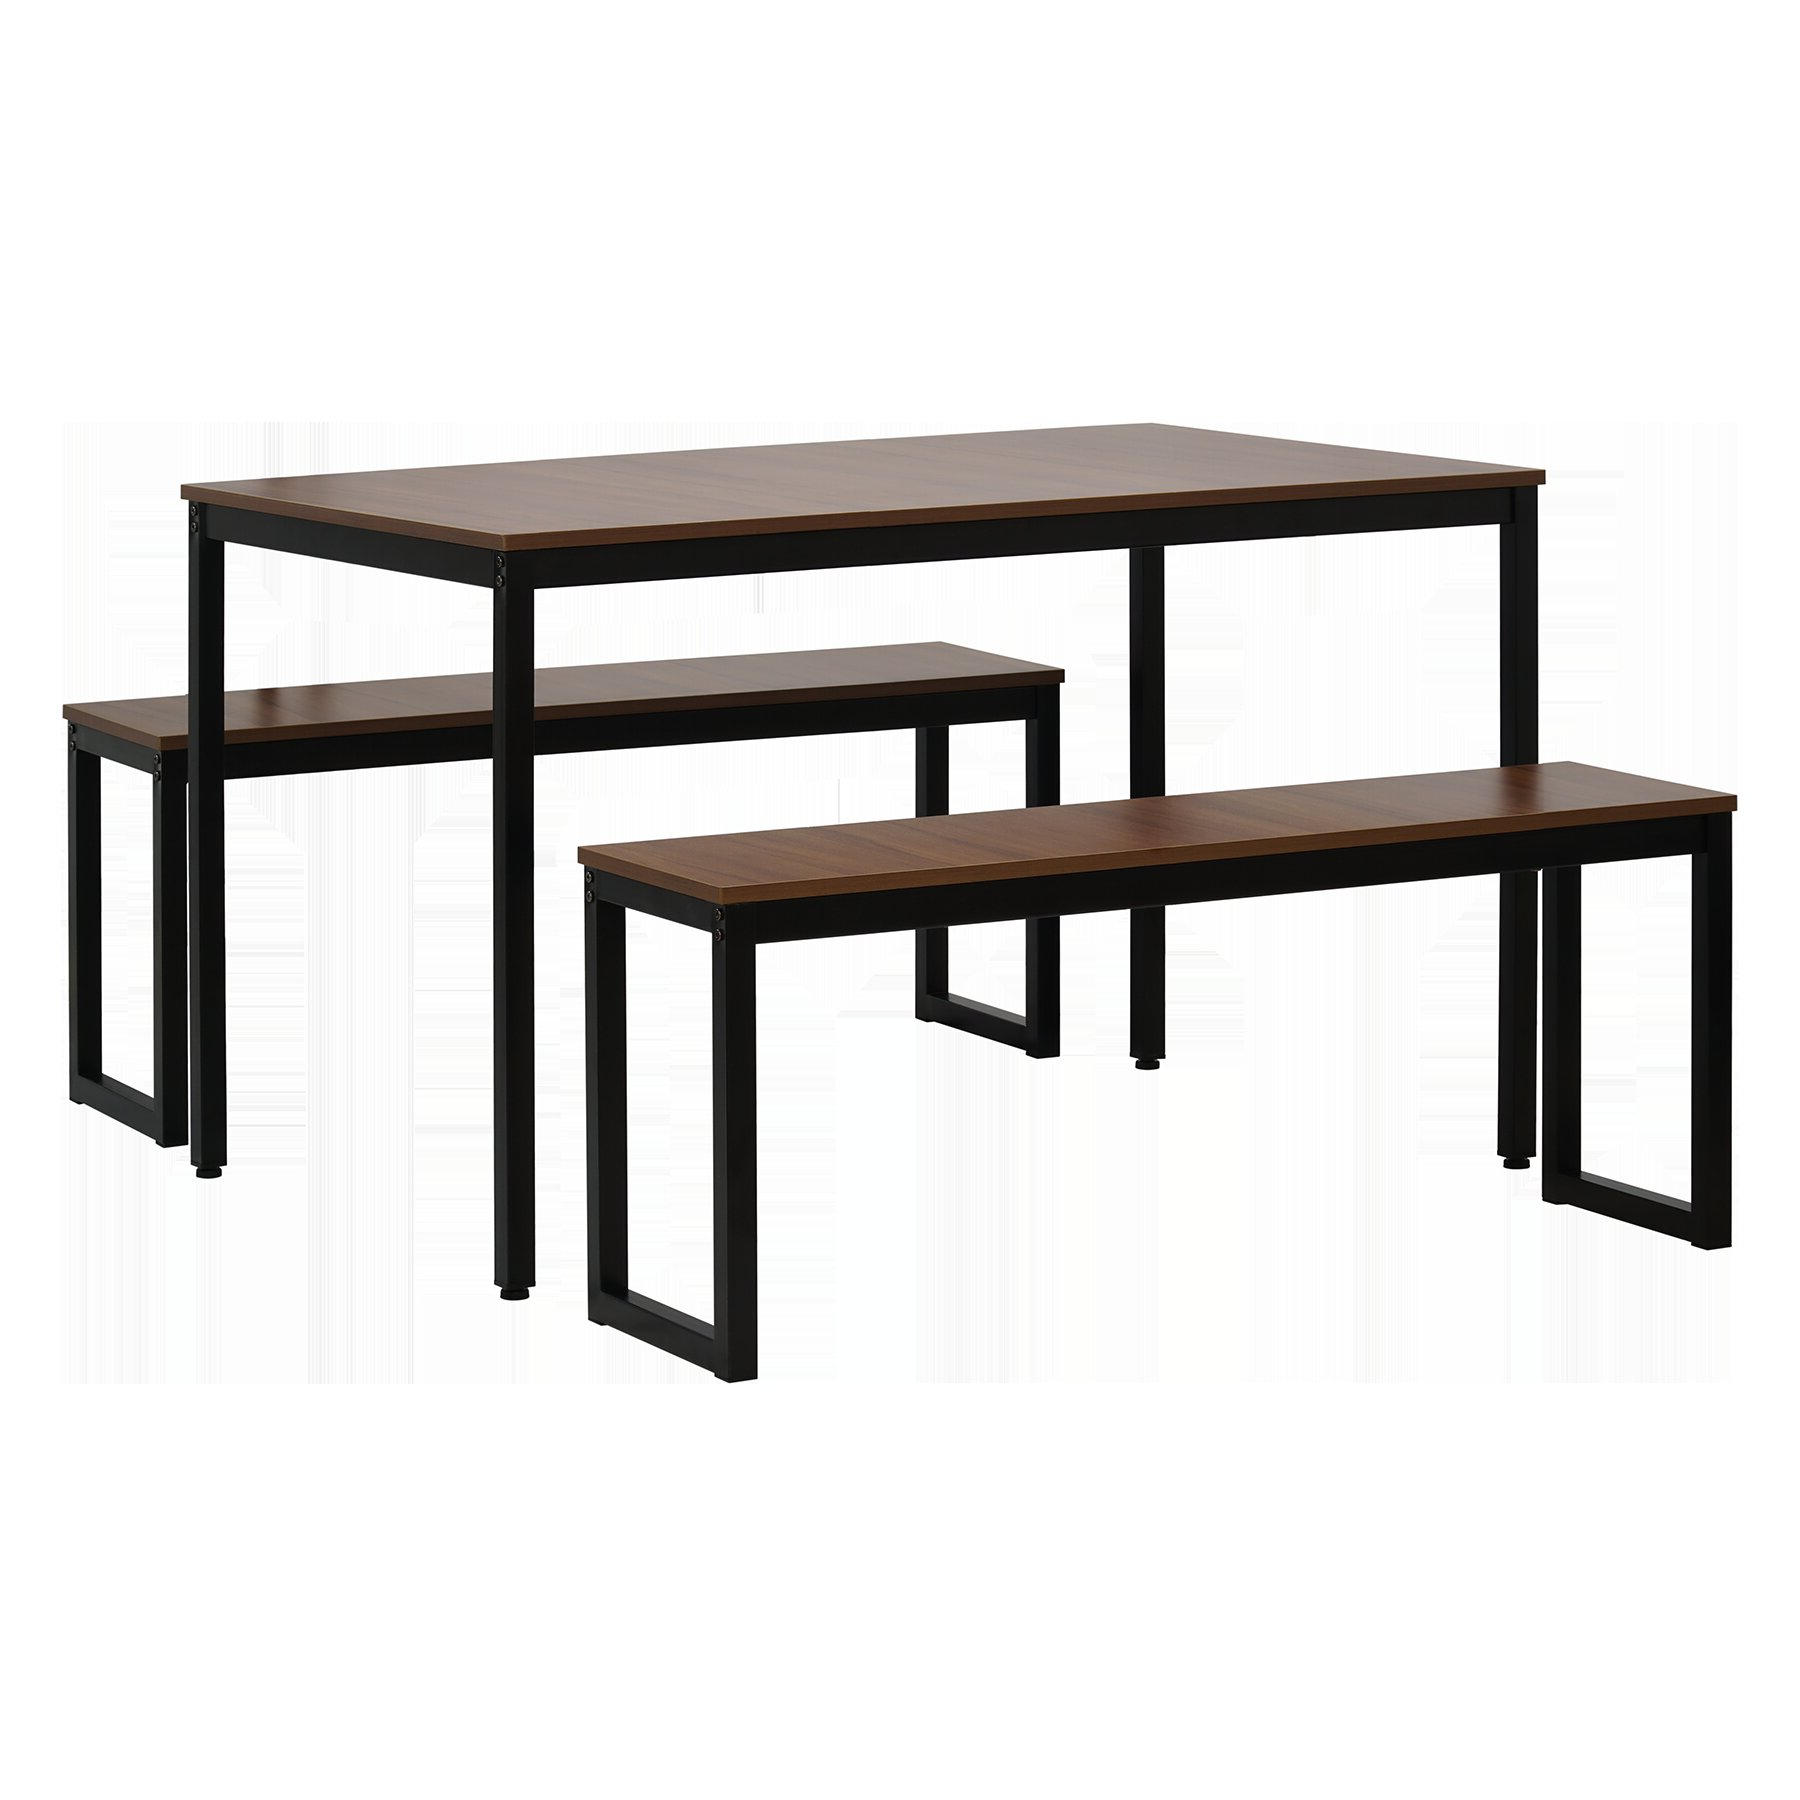 West Hill Family Table 3 Piece Dining Set With Fashionable Saintcroix 3 Piece Dining Sets (View 7 of 20)